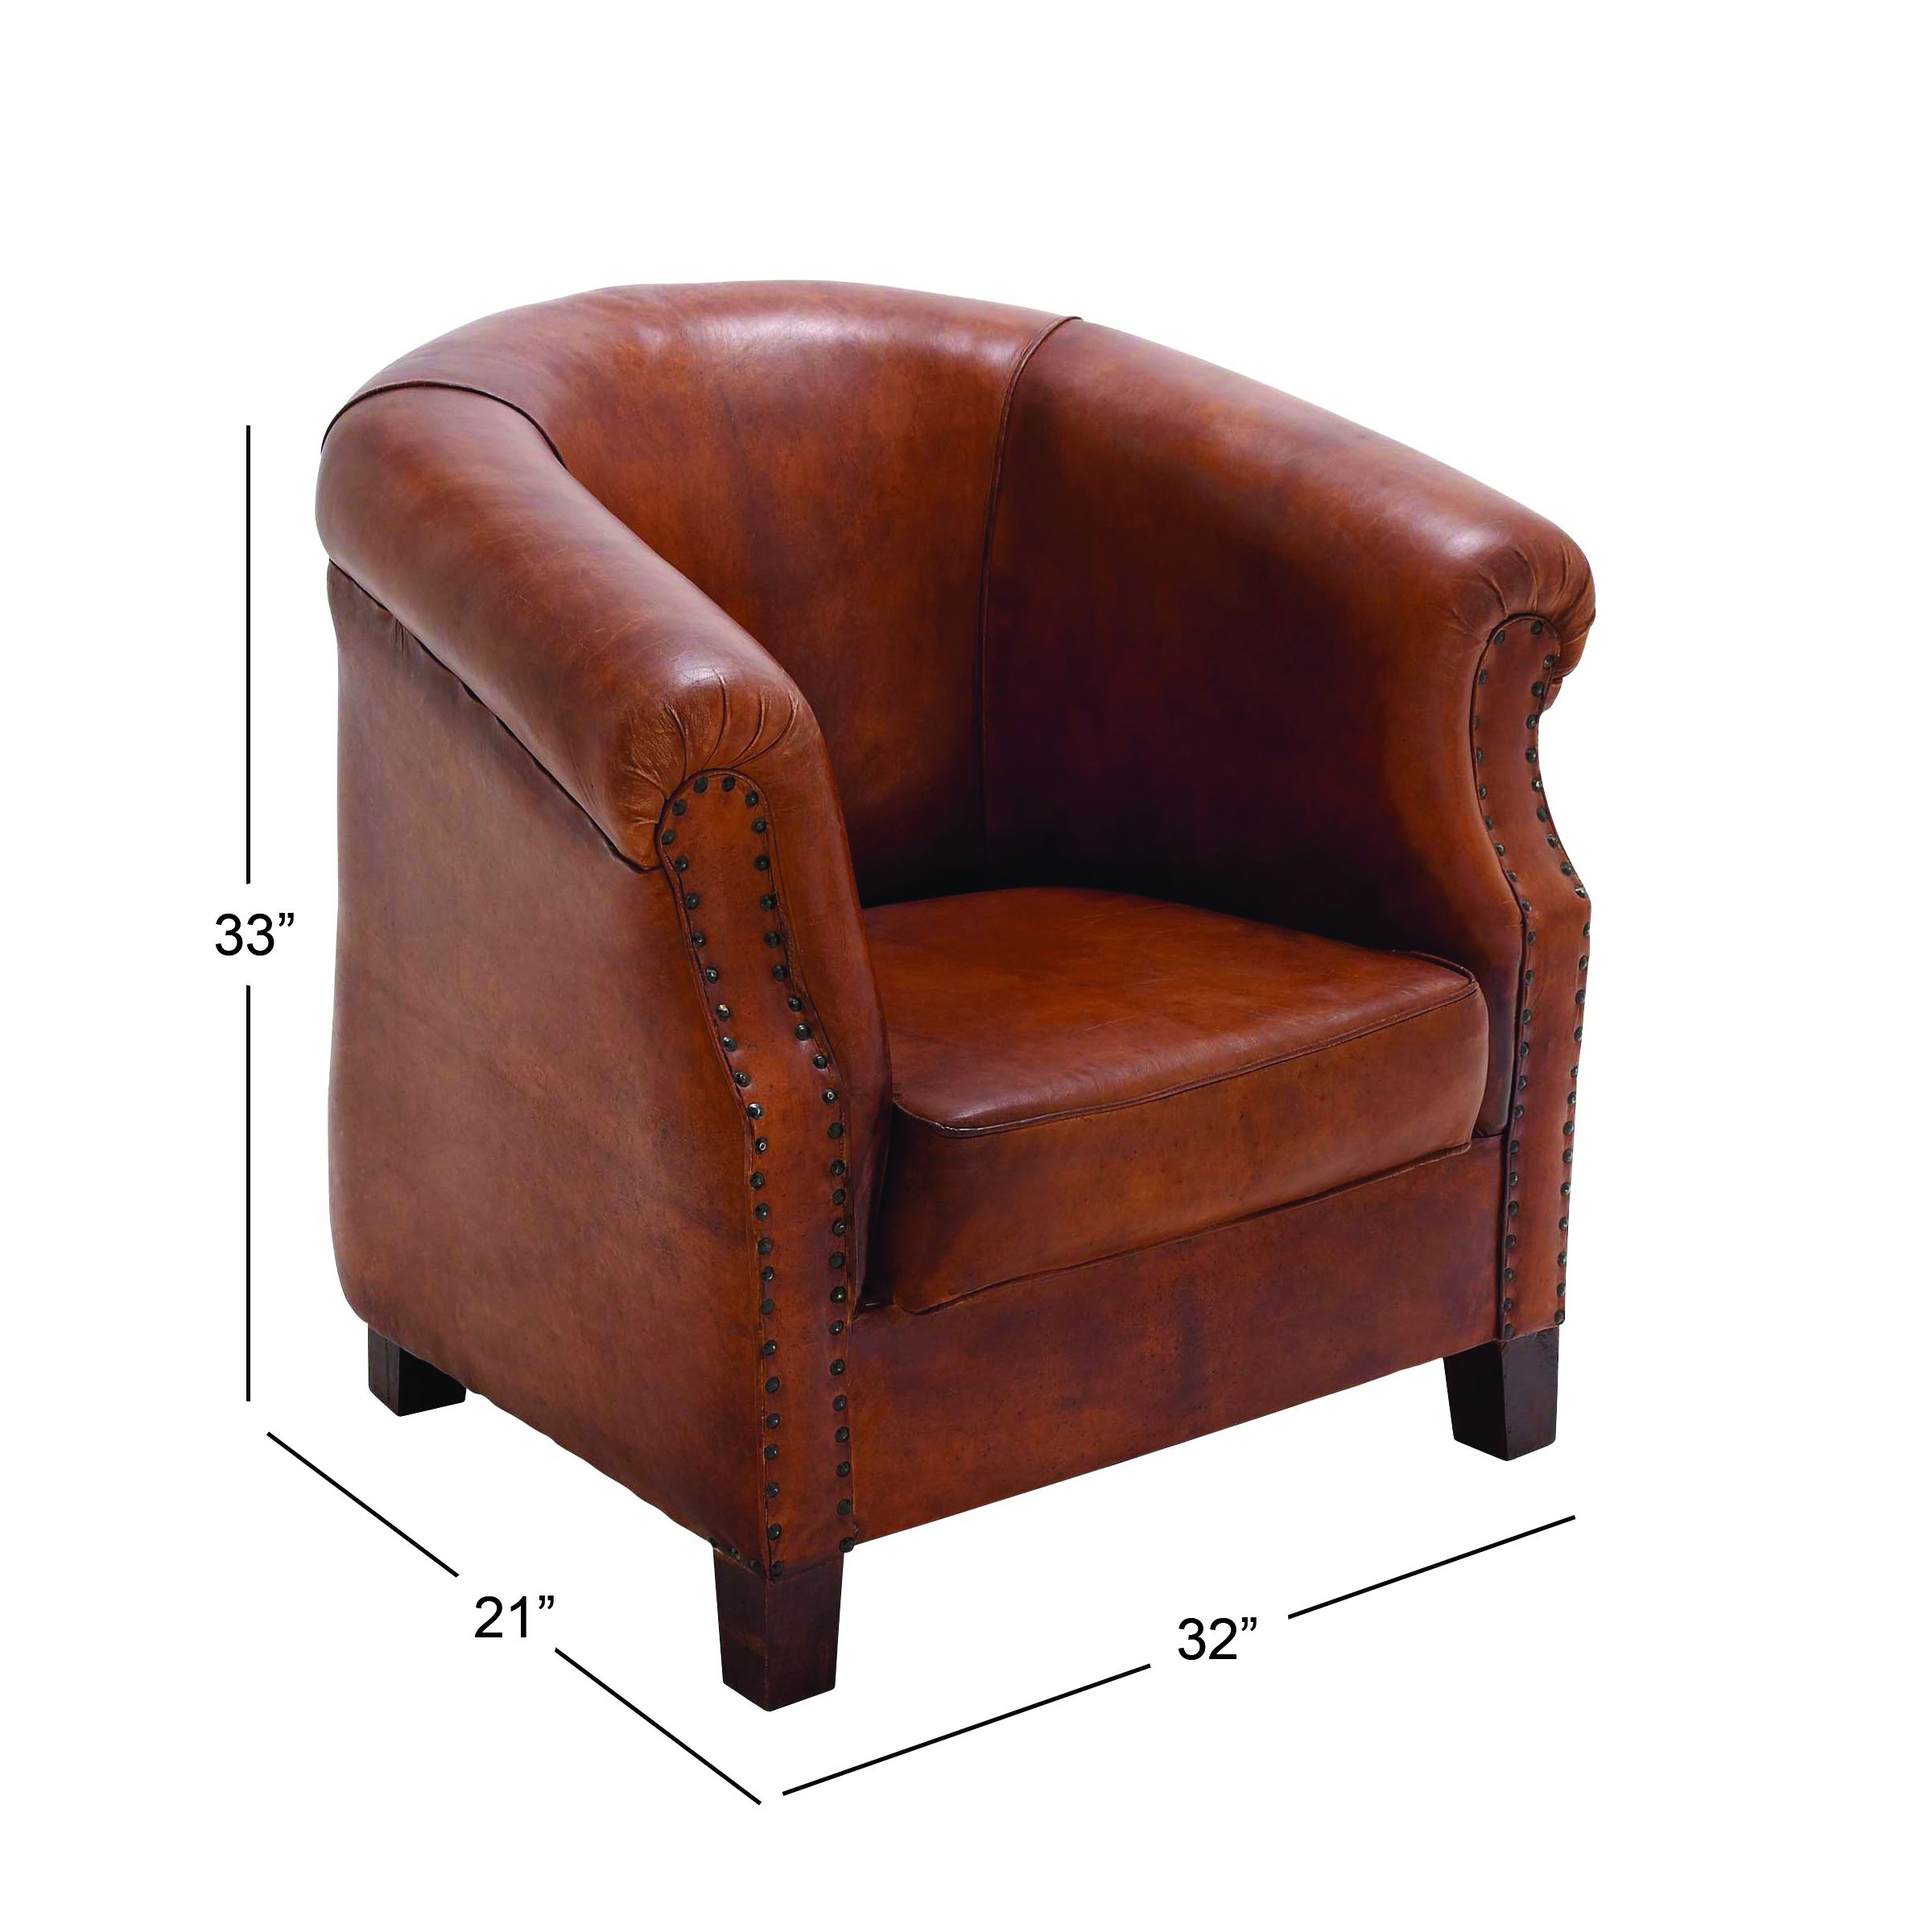 Deco 79 80876 Real Leather Captains Chair, 32'' x 33''